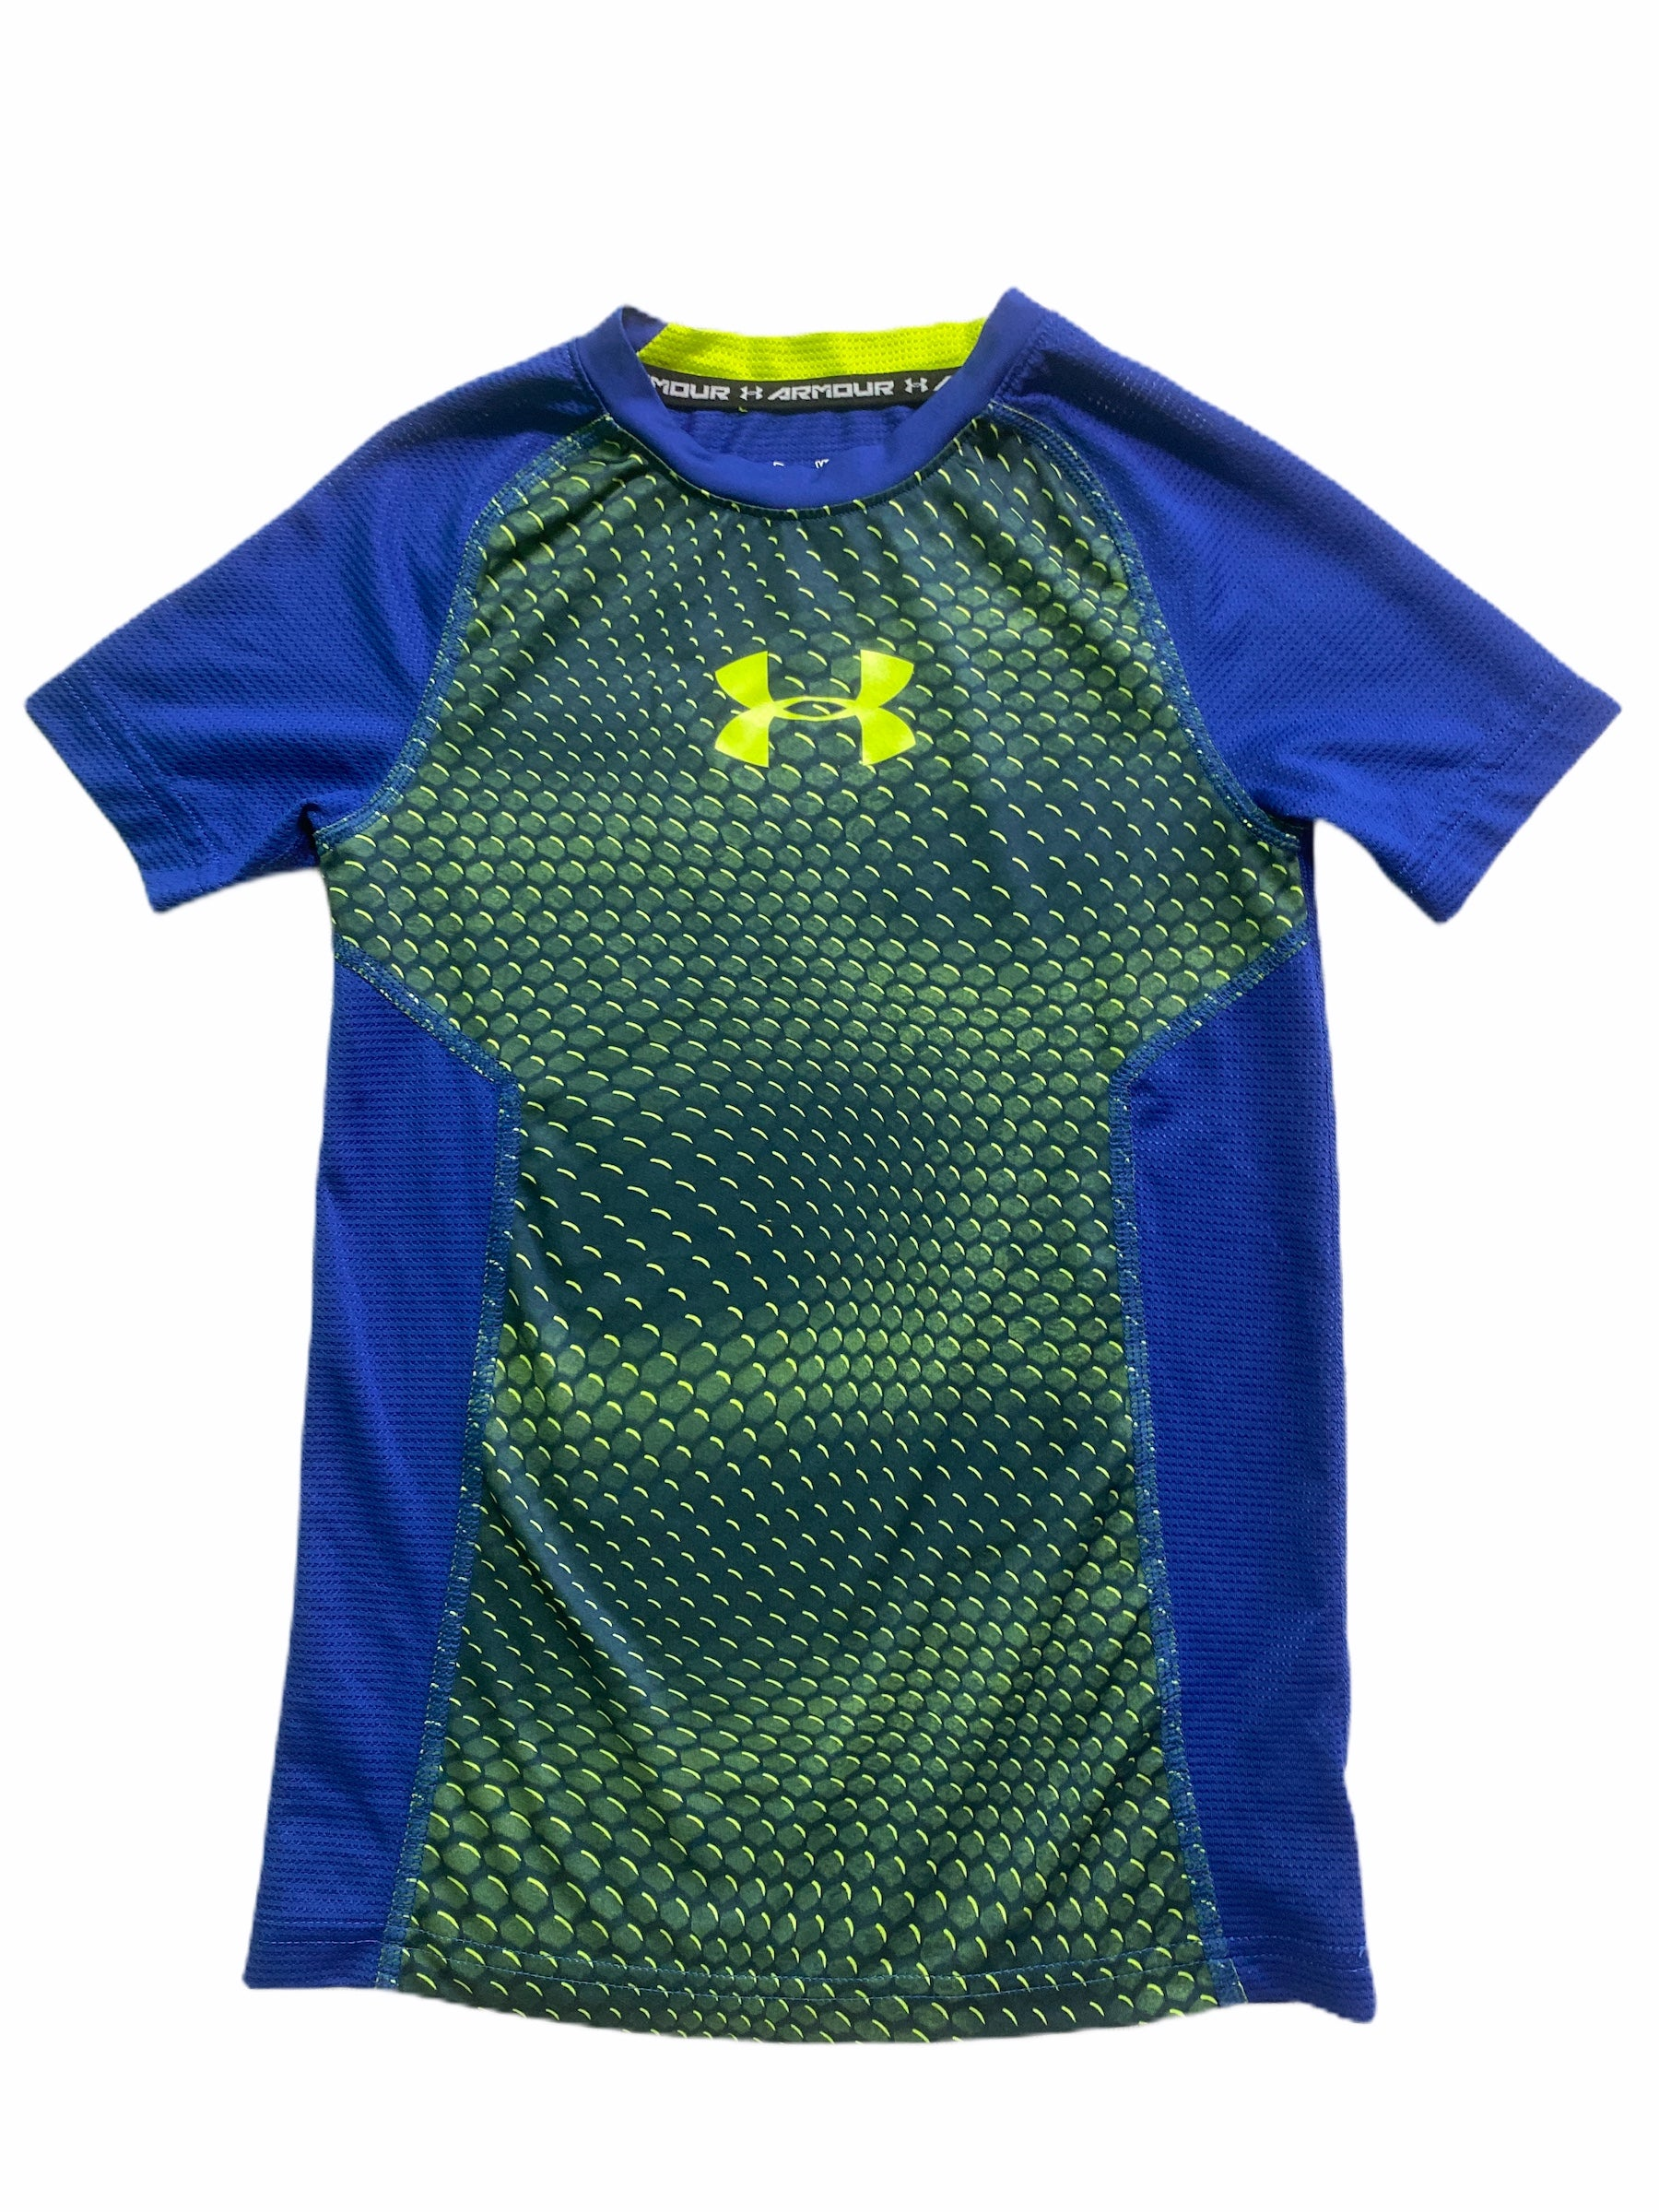 Under Armour Blue Athletic Tee (5/6 Boys)